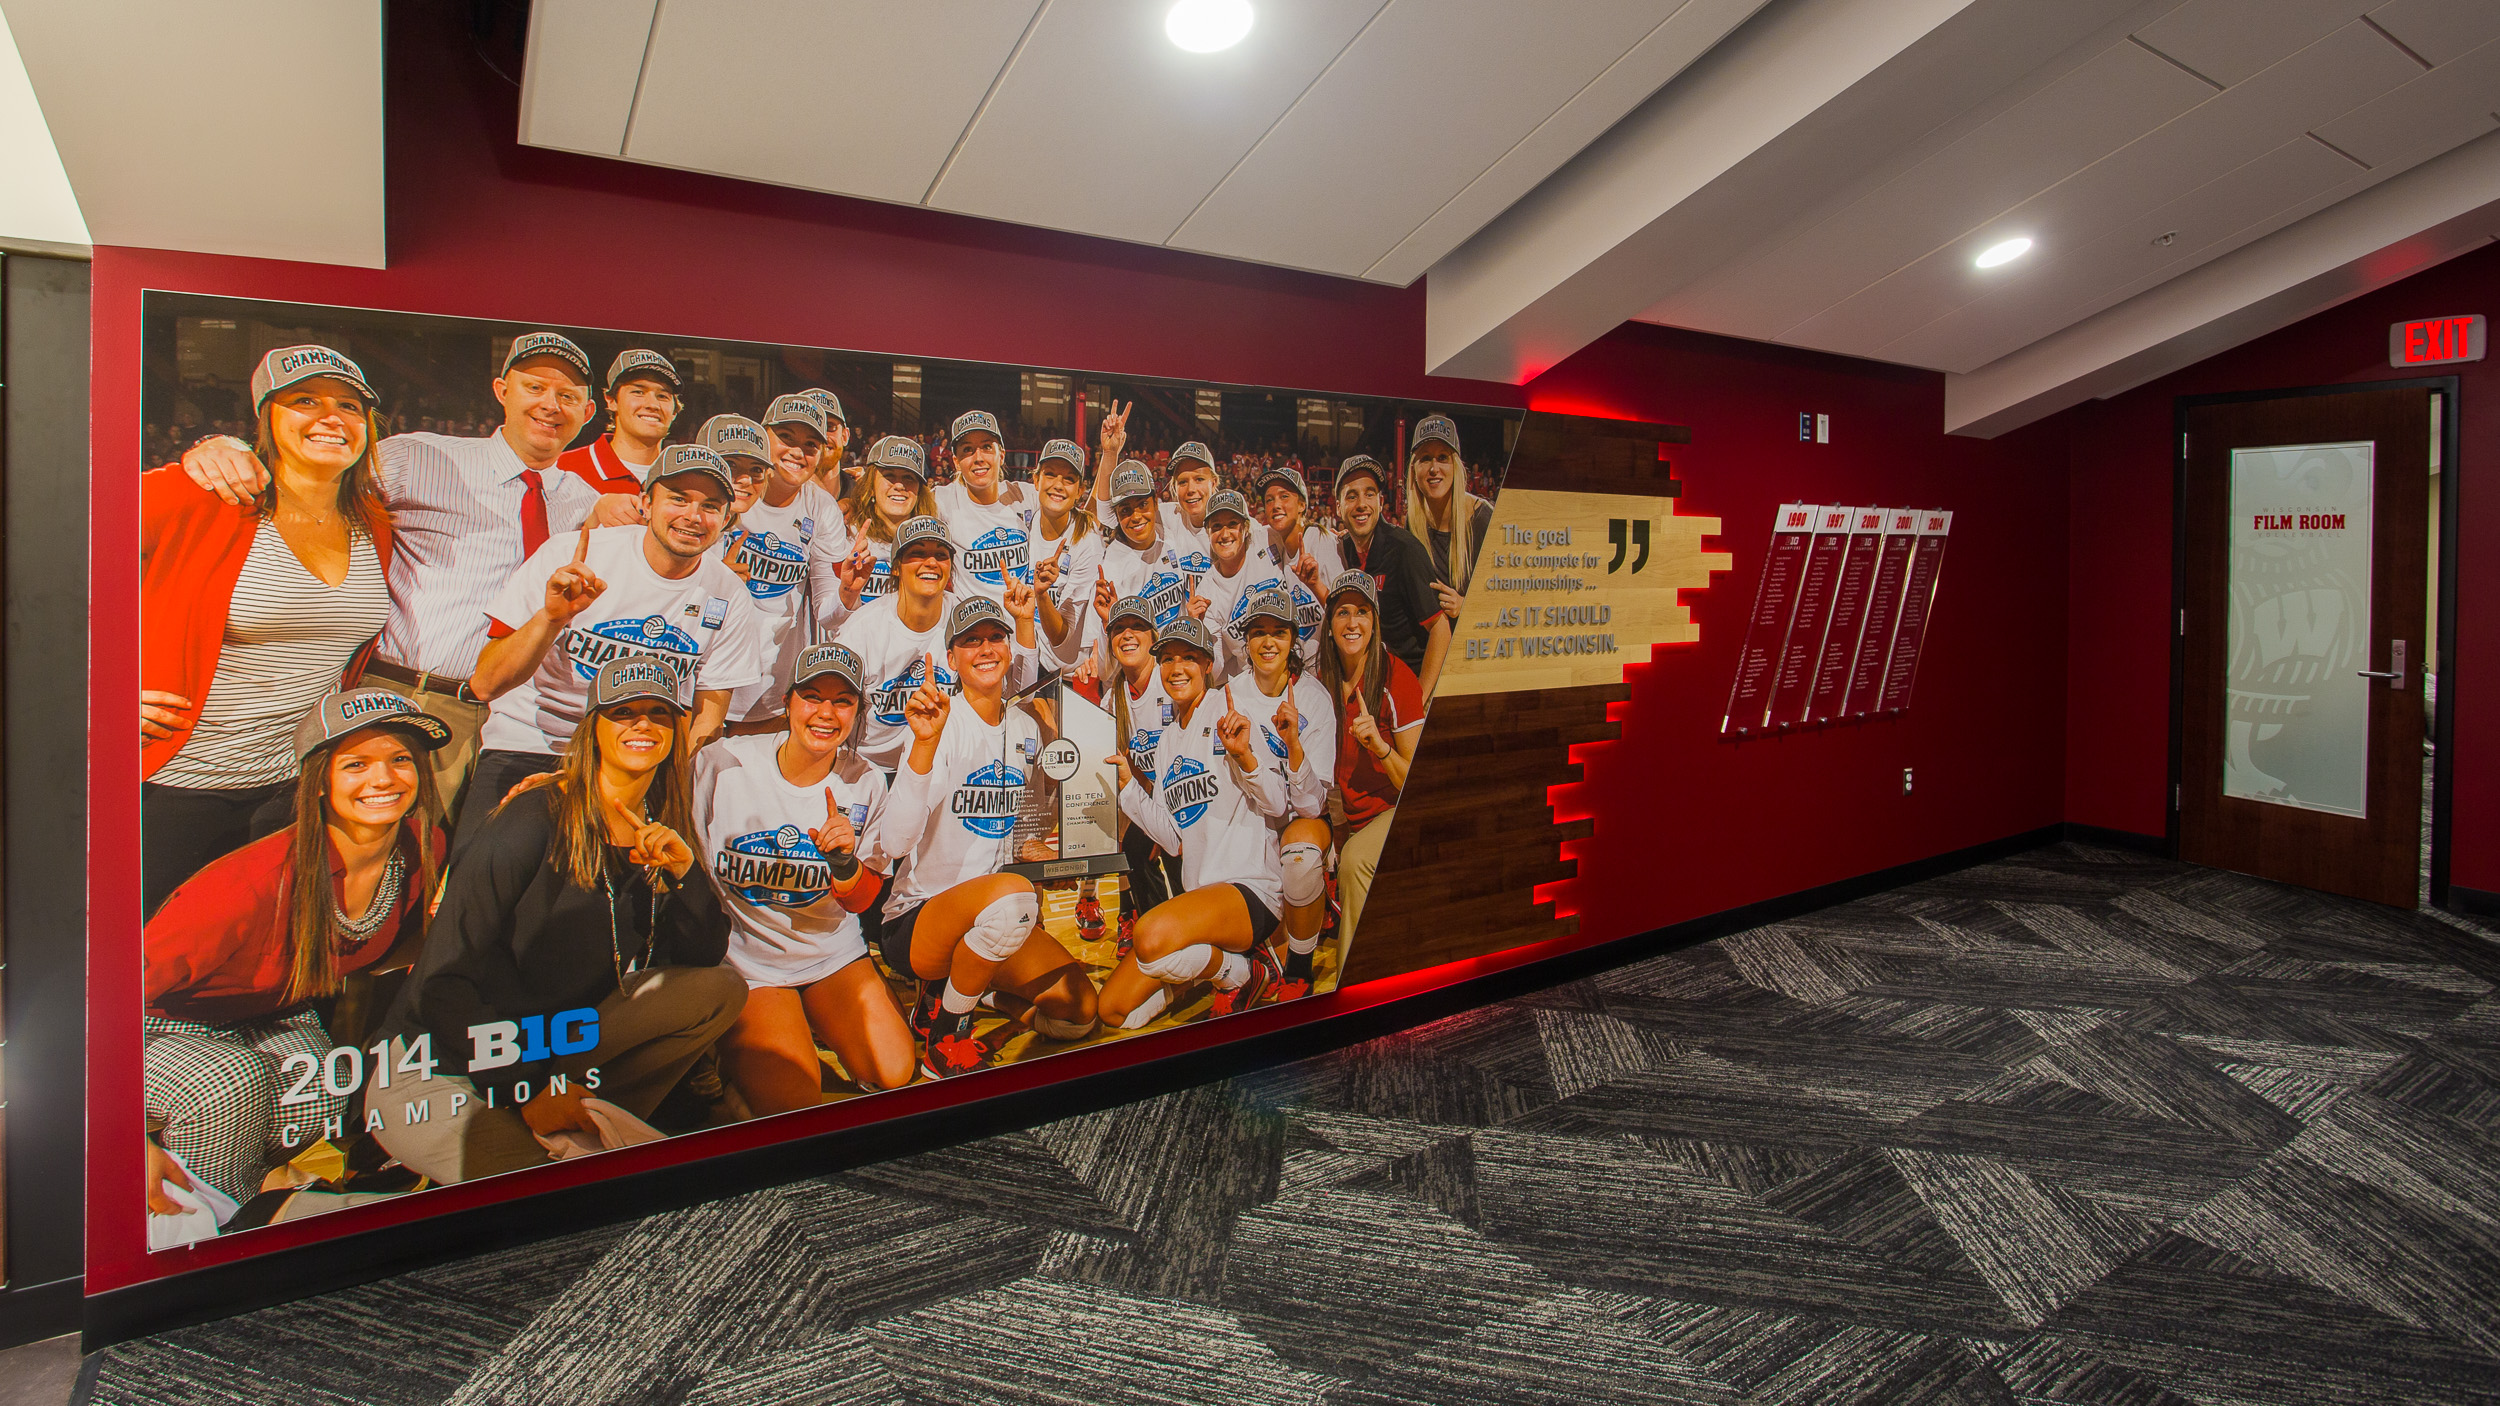 Wall Graphics & Facility Branding Volleyball